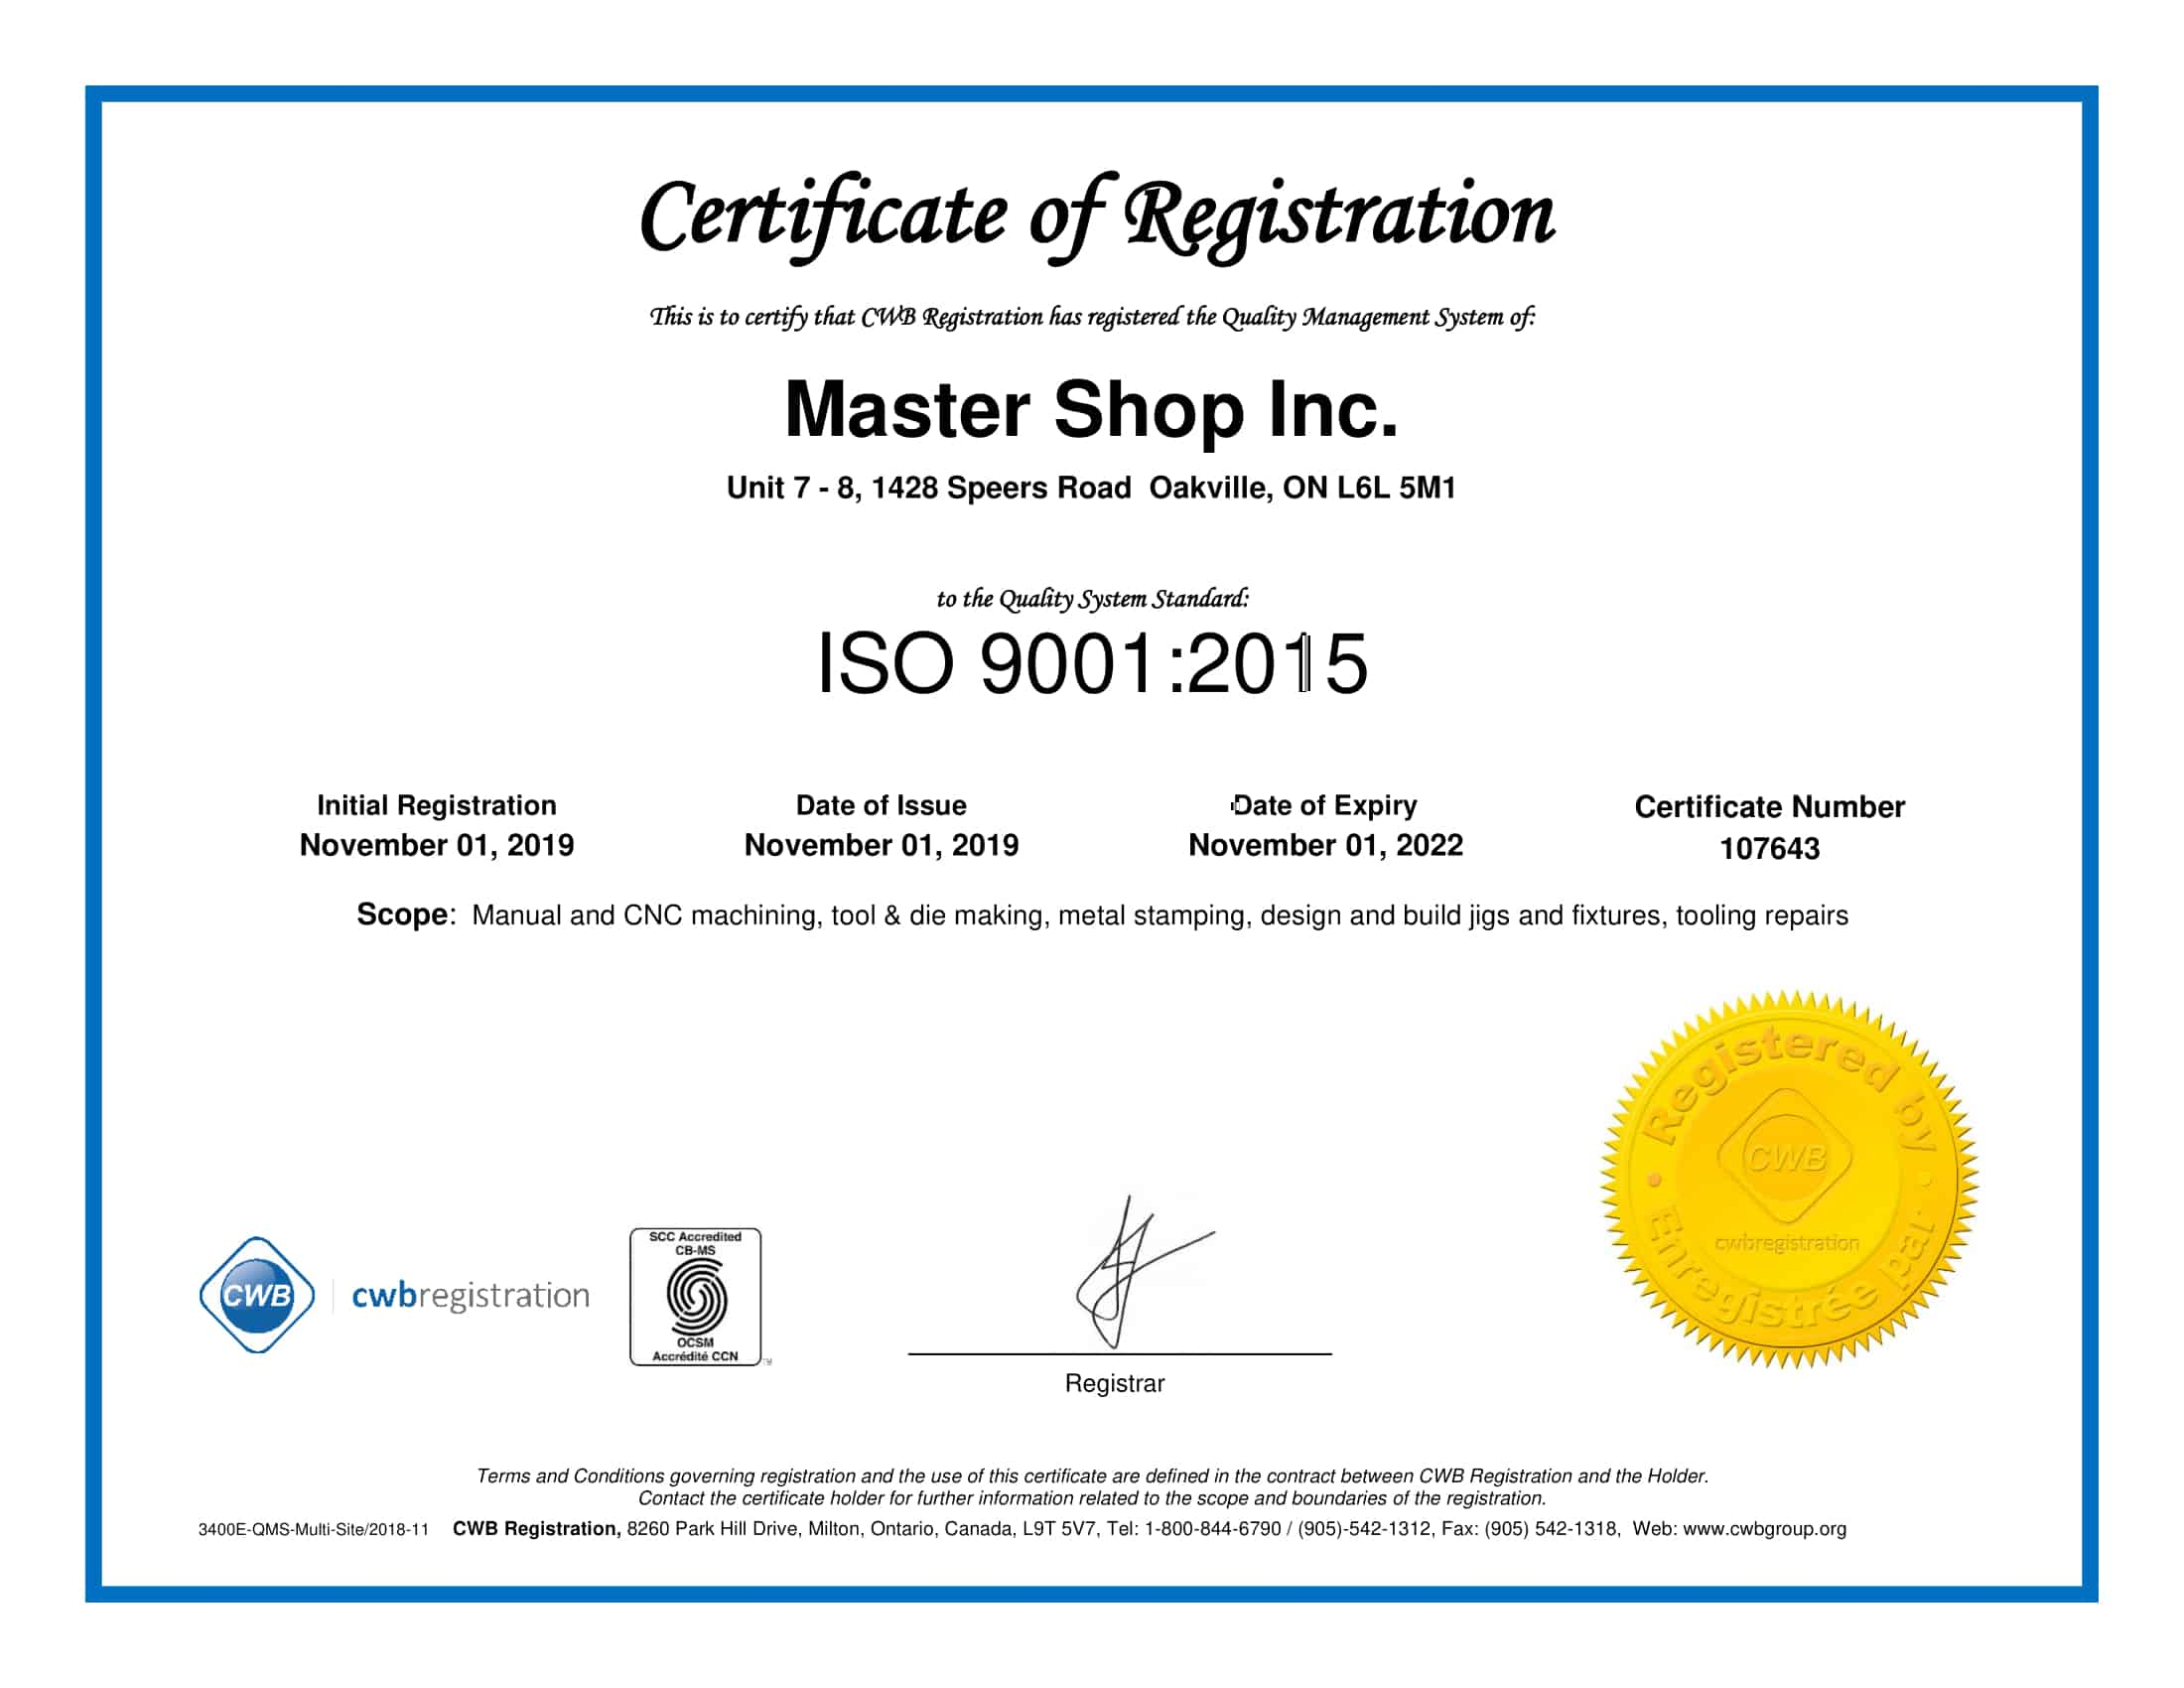 ISO certified - ISO 9001:2015